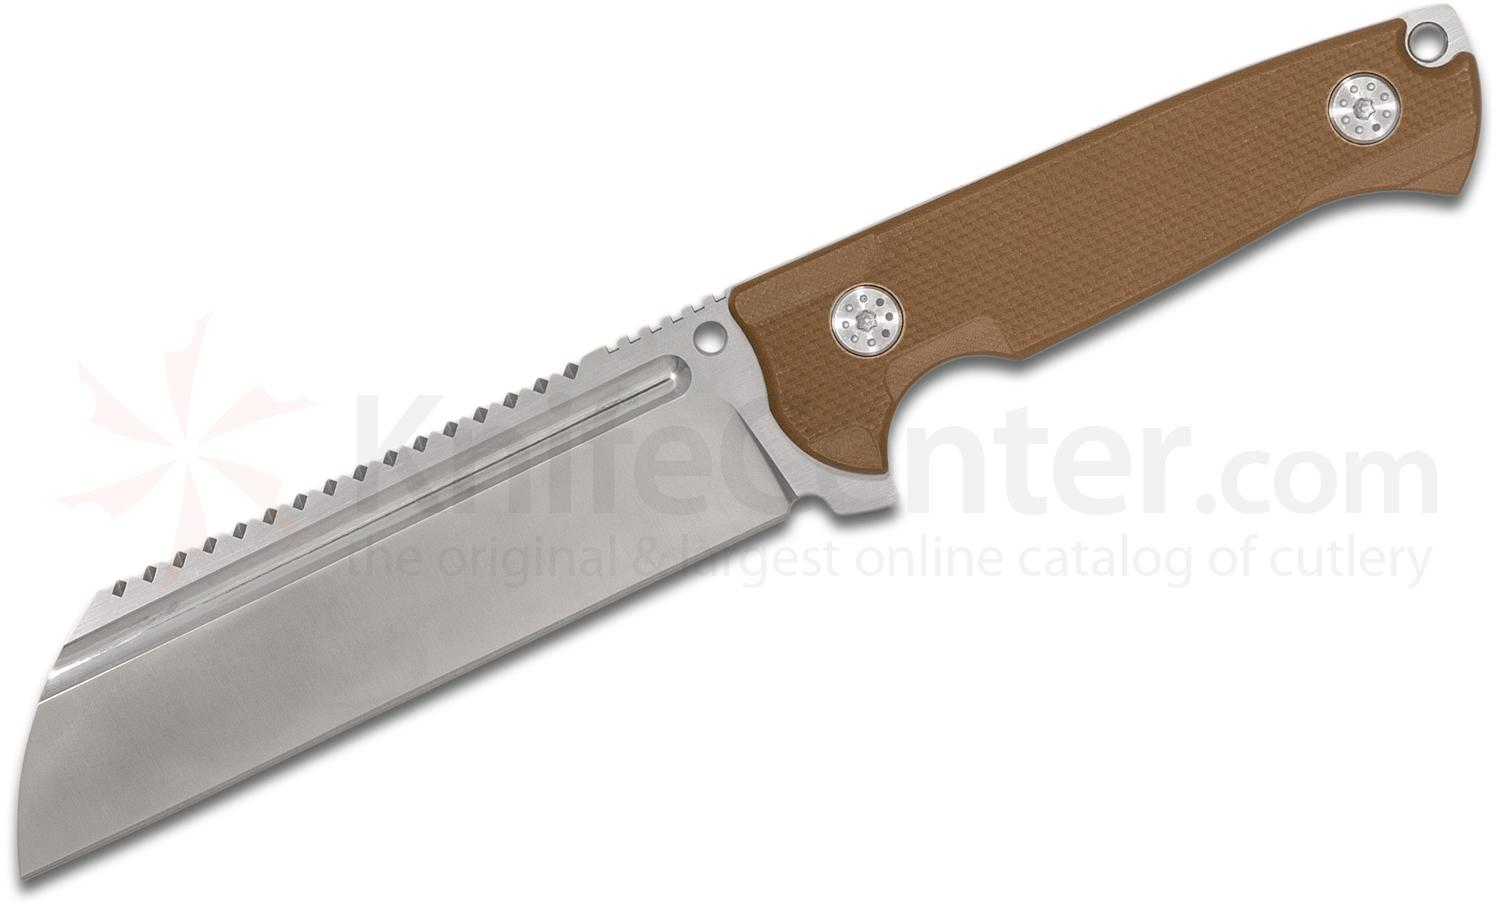 Andre De Villiers Knives Saw Butcher Fixed 6 inch S35VN Sawback Wharncliffe Blade, Tan G10 Handles and Kydex Sheath